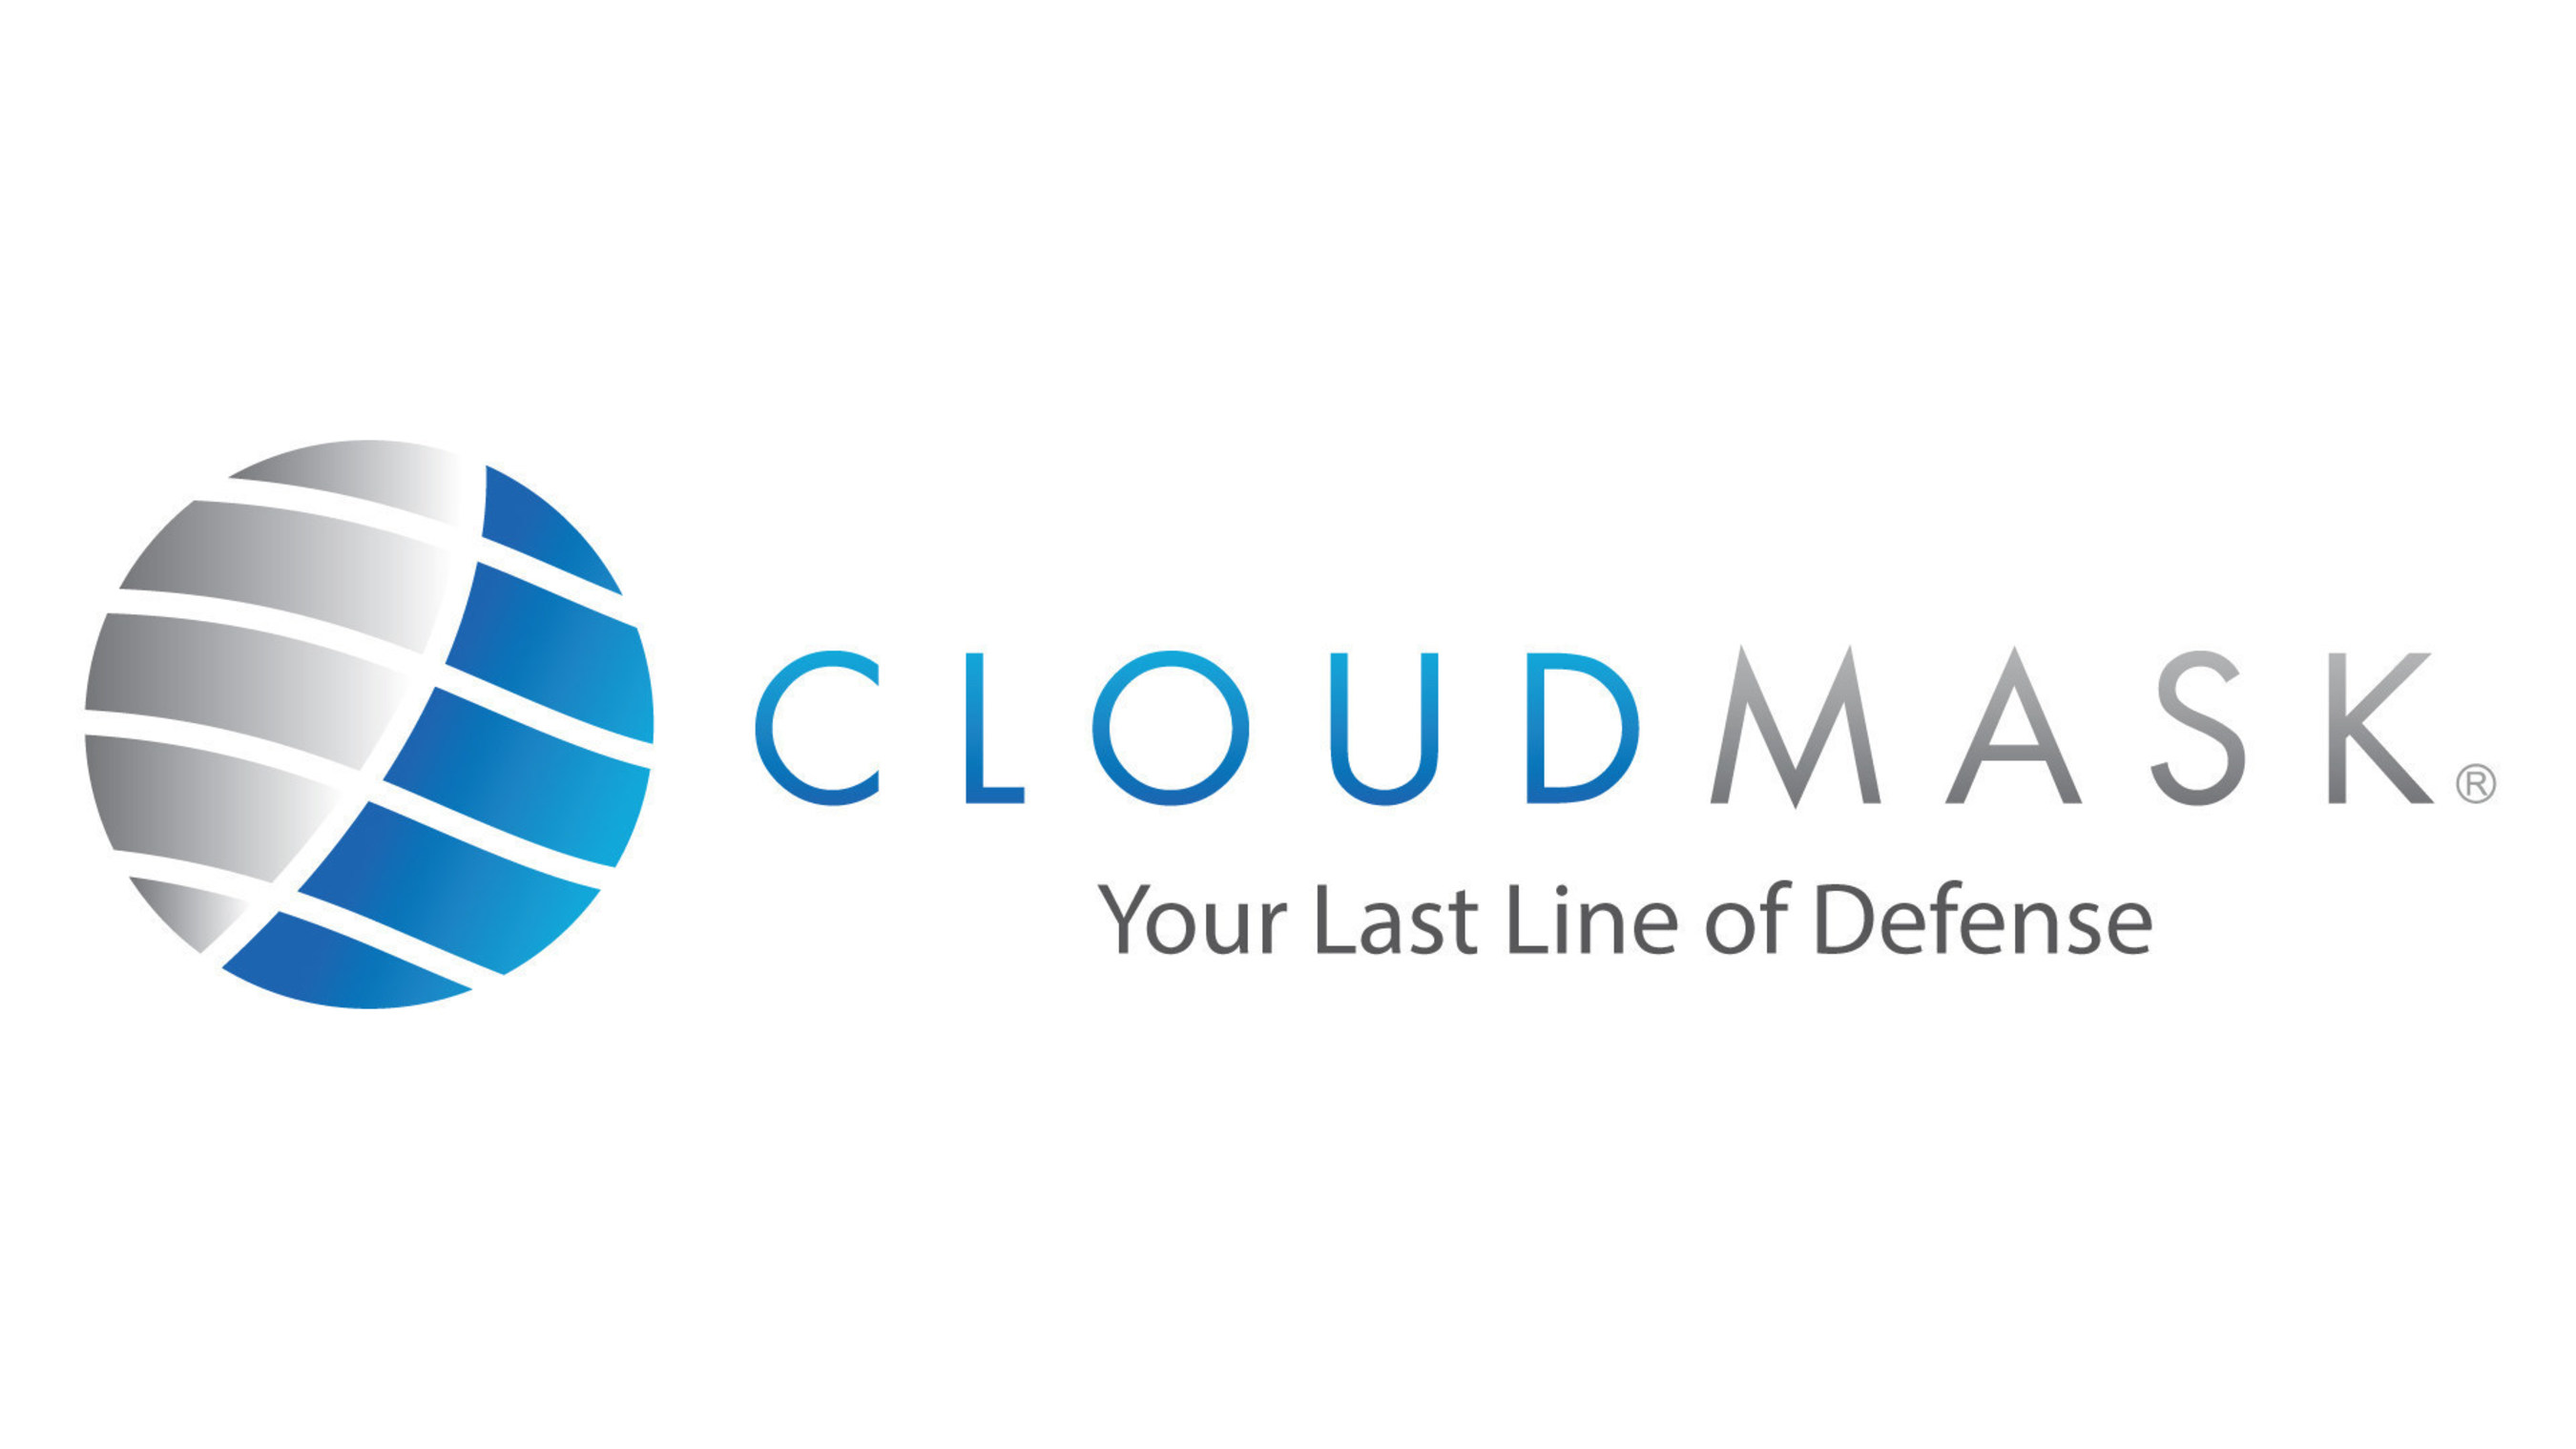 CloudMask, data protection under breach